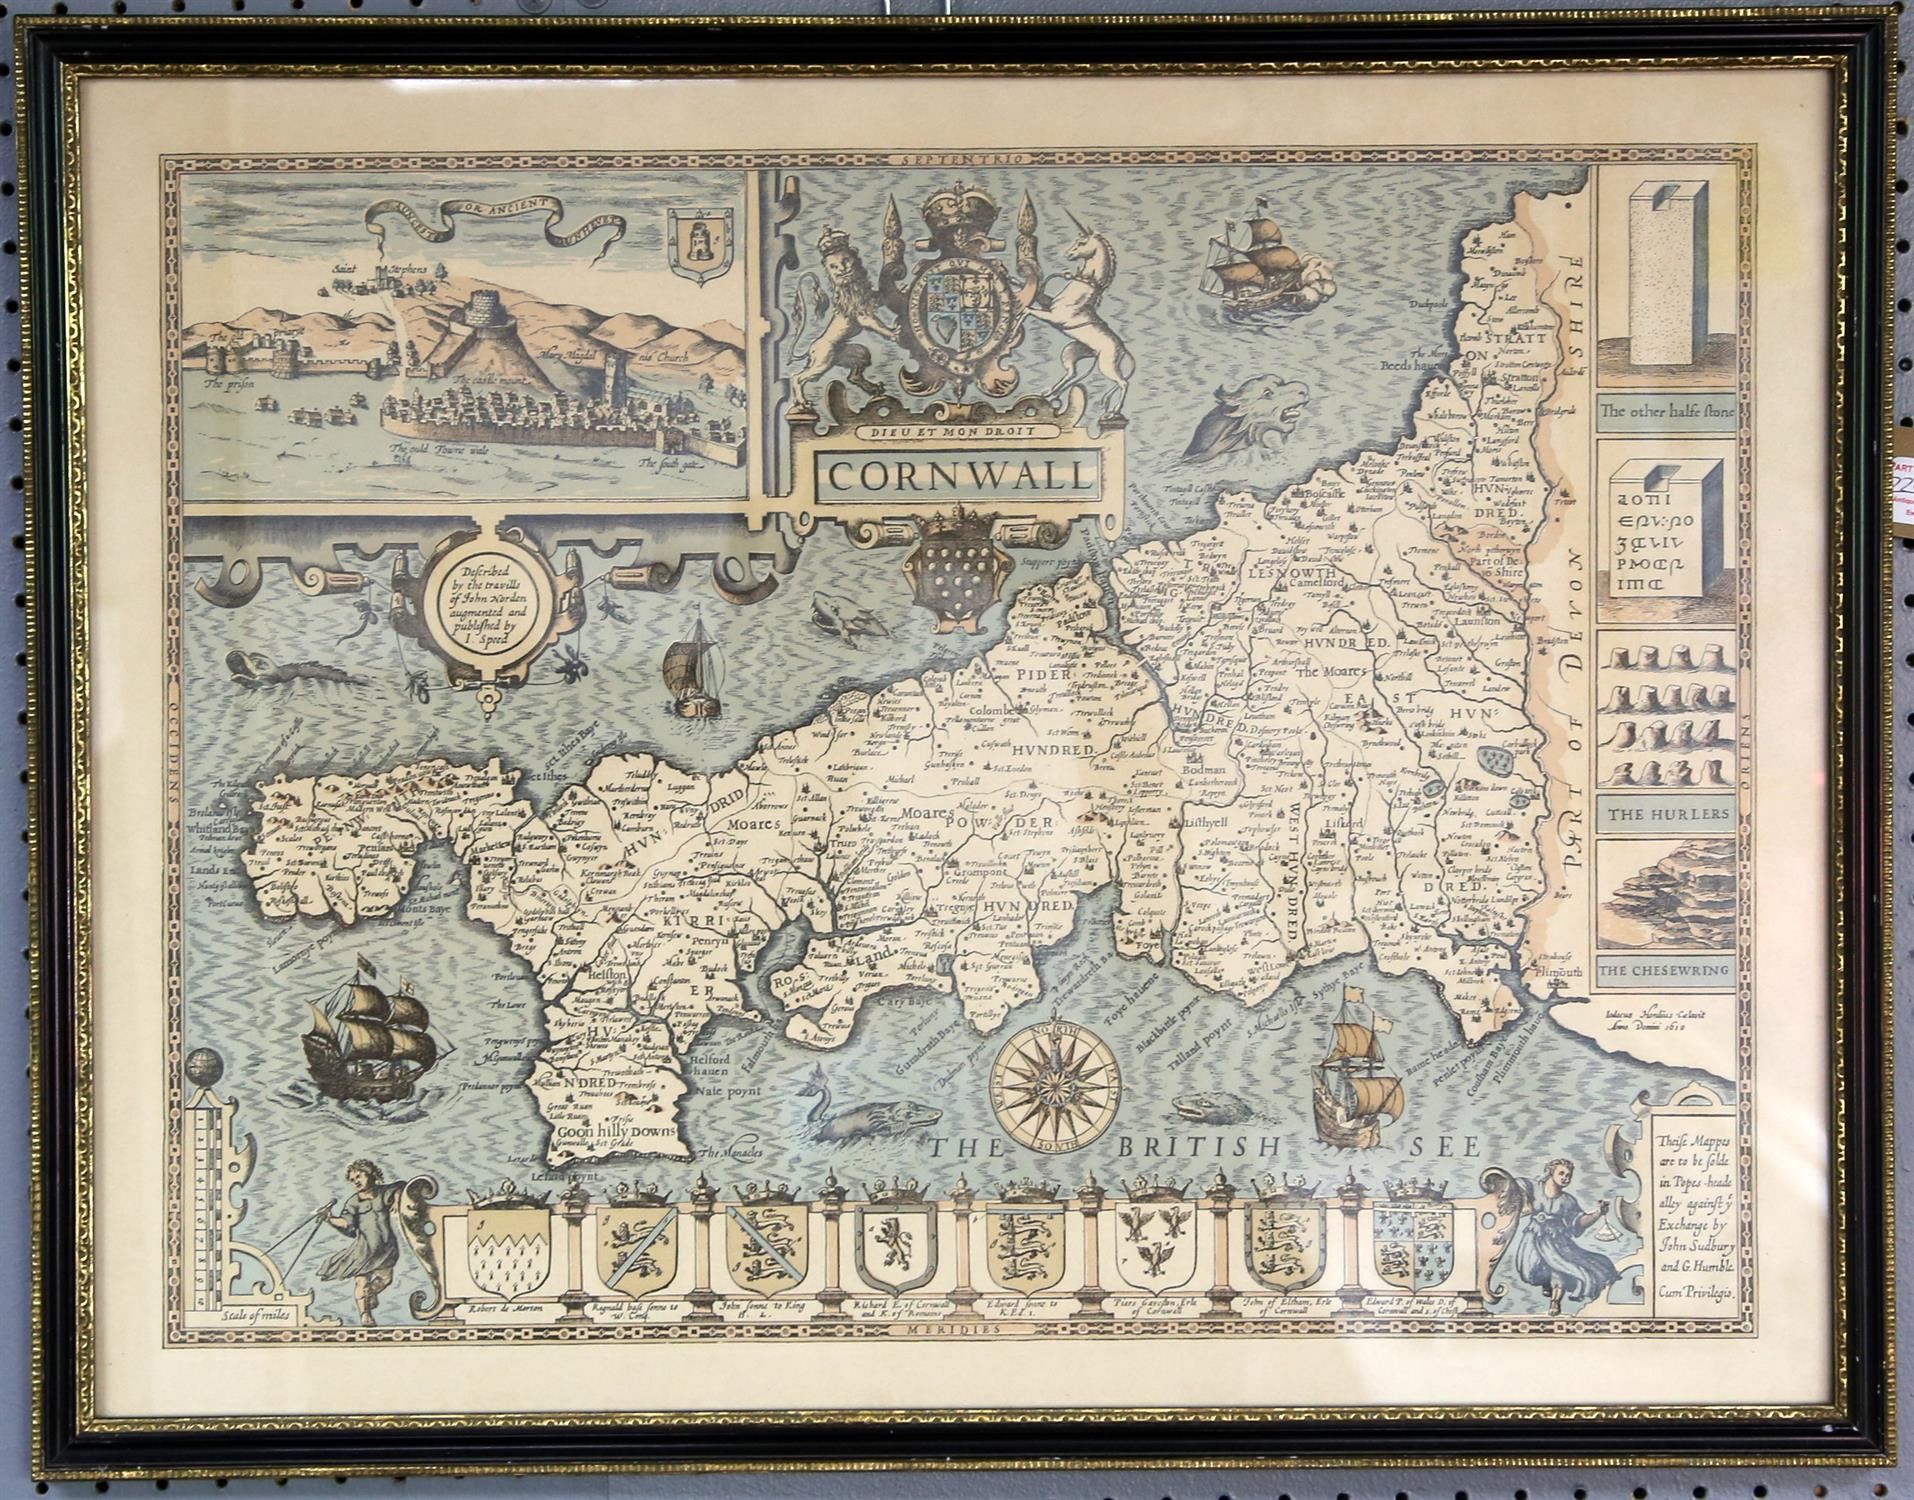 A collection of 5 reproduction maps, Ireland, Cornwall, Shropshire, Somerset and Wales - Image 2 of 4